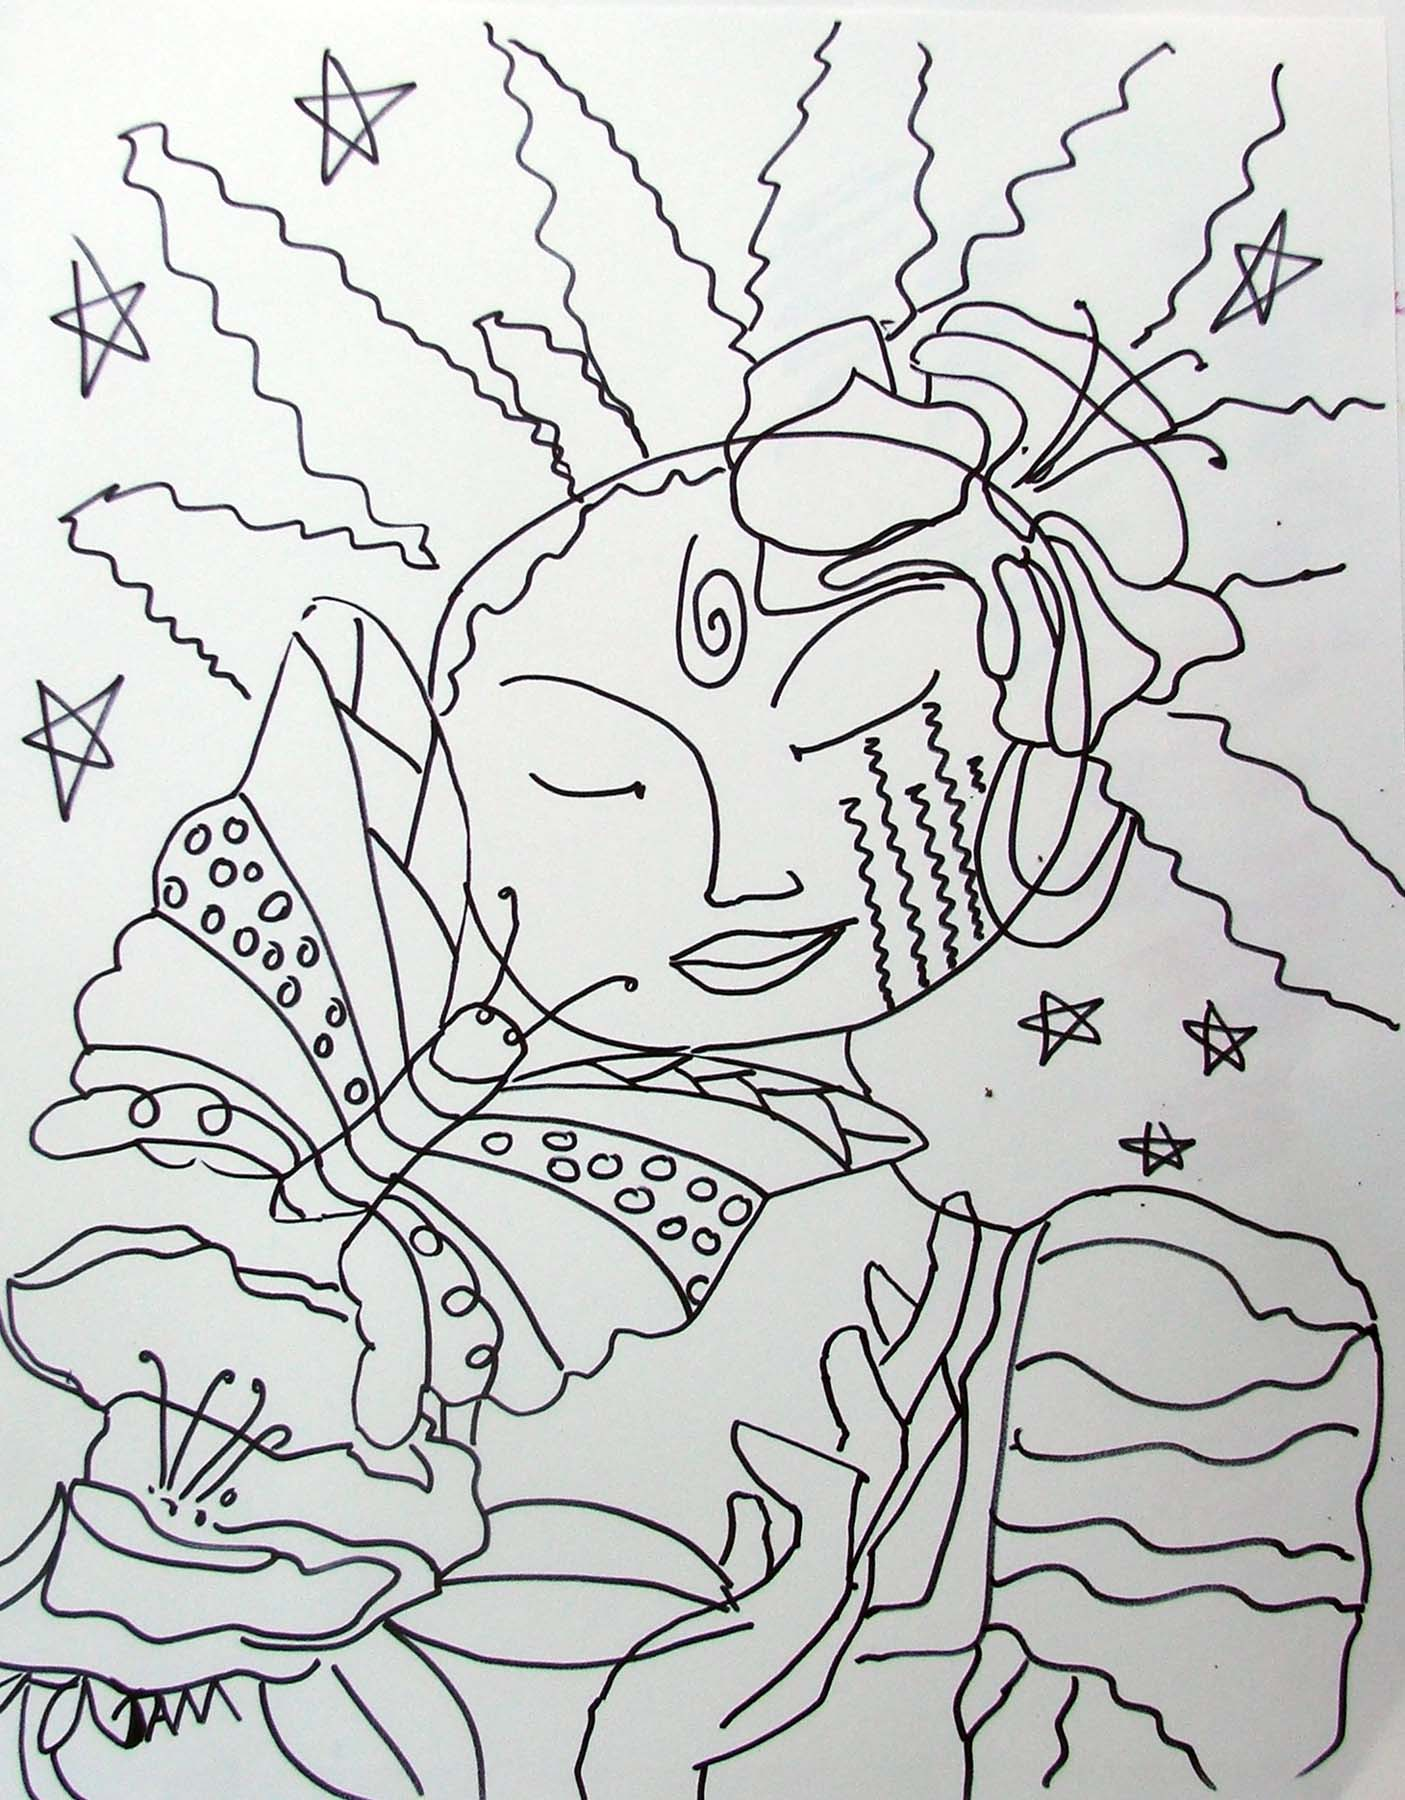 Abstract Butterfly Coloring Pages : Free coloring pages of abstract butterflies